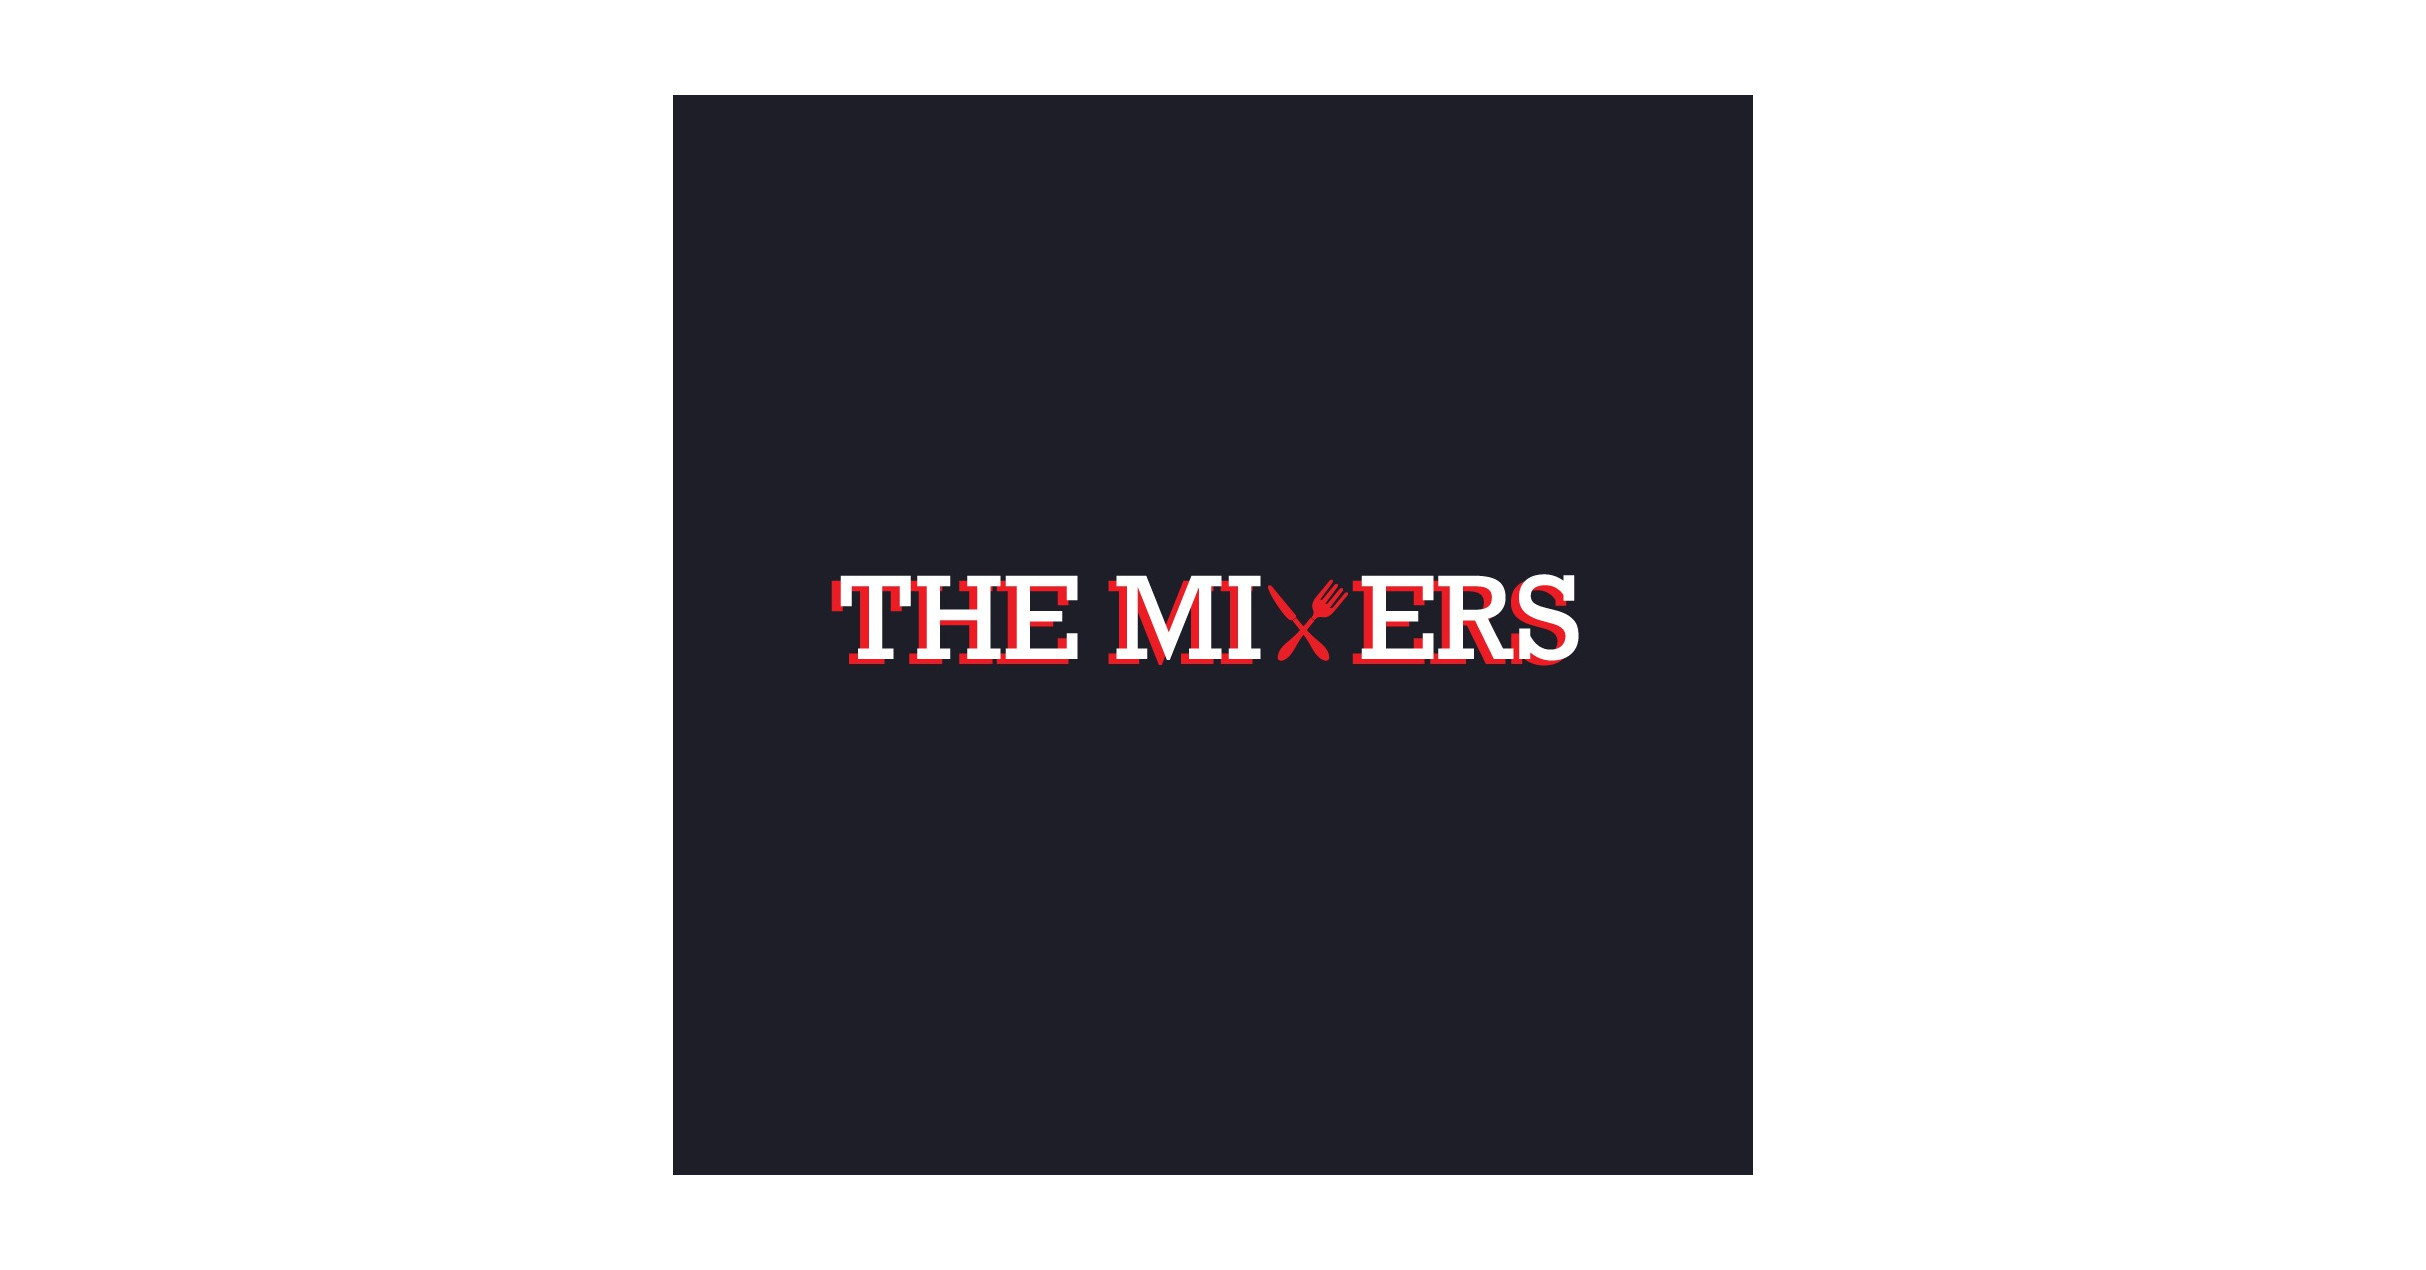 Job: Account Executive at The Mixers in Cairo, Egypt